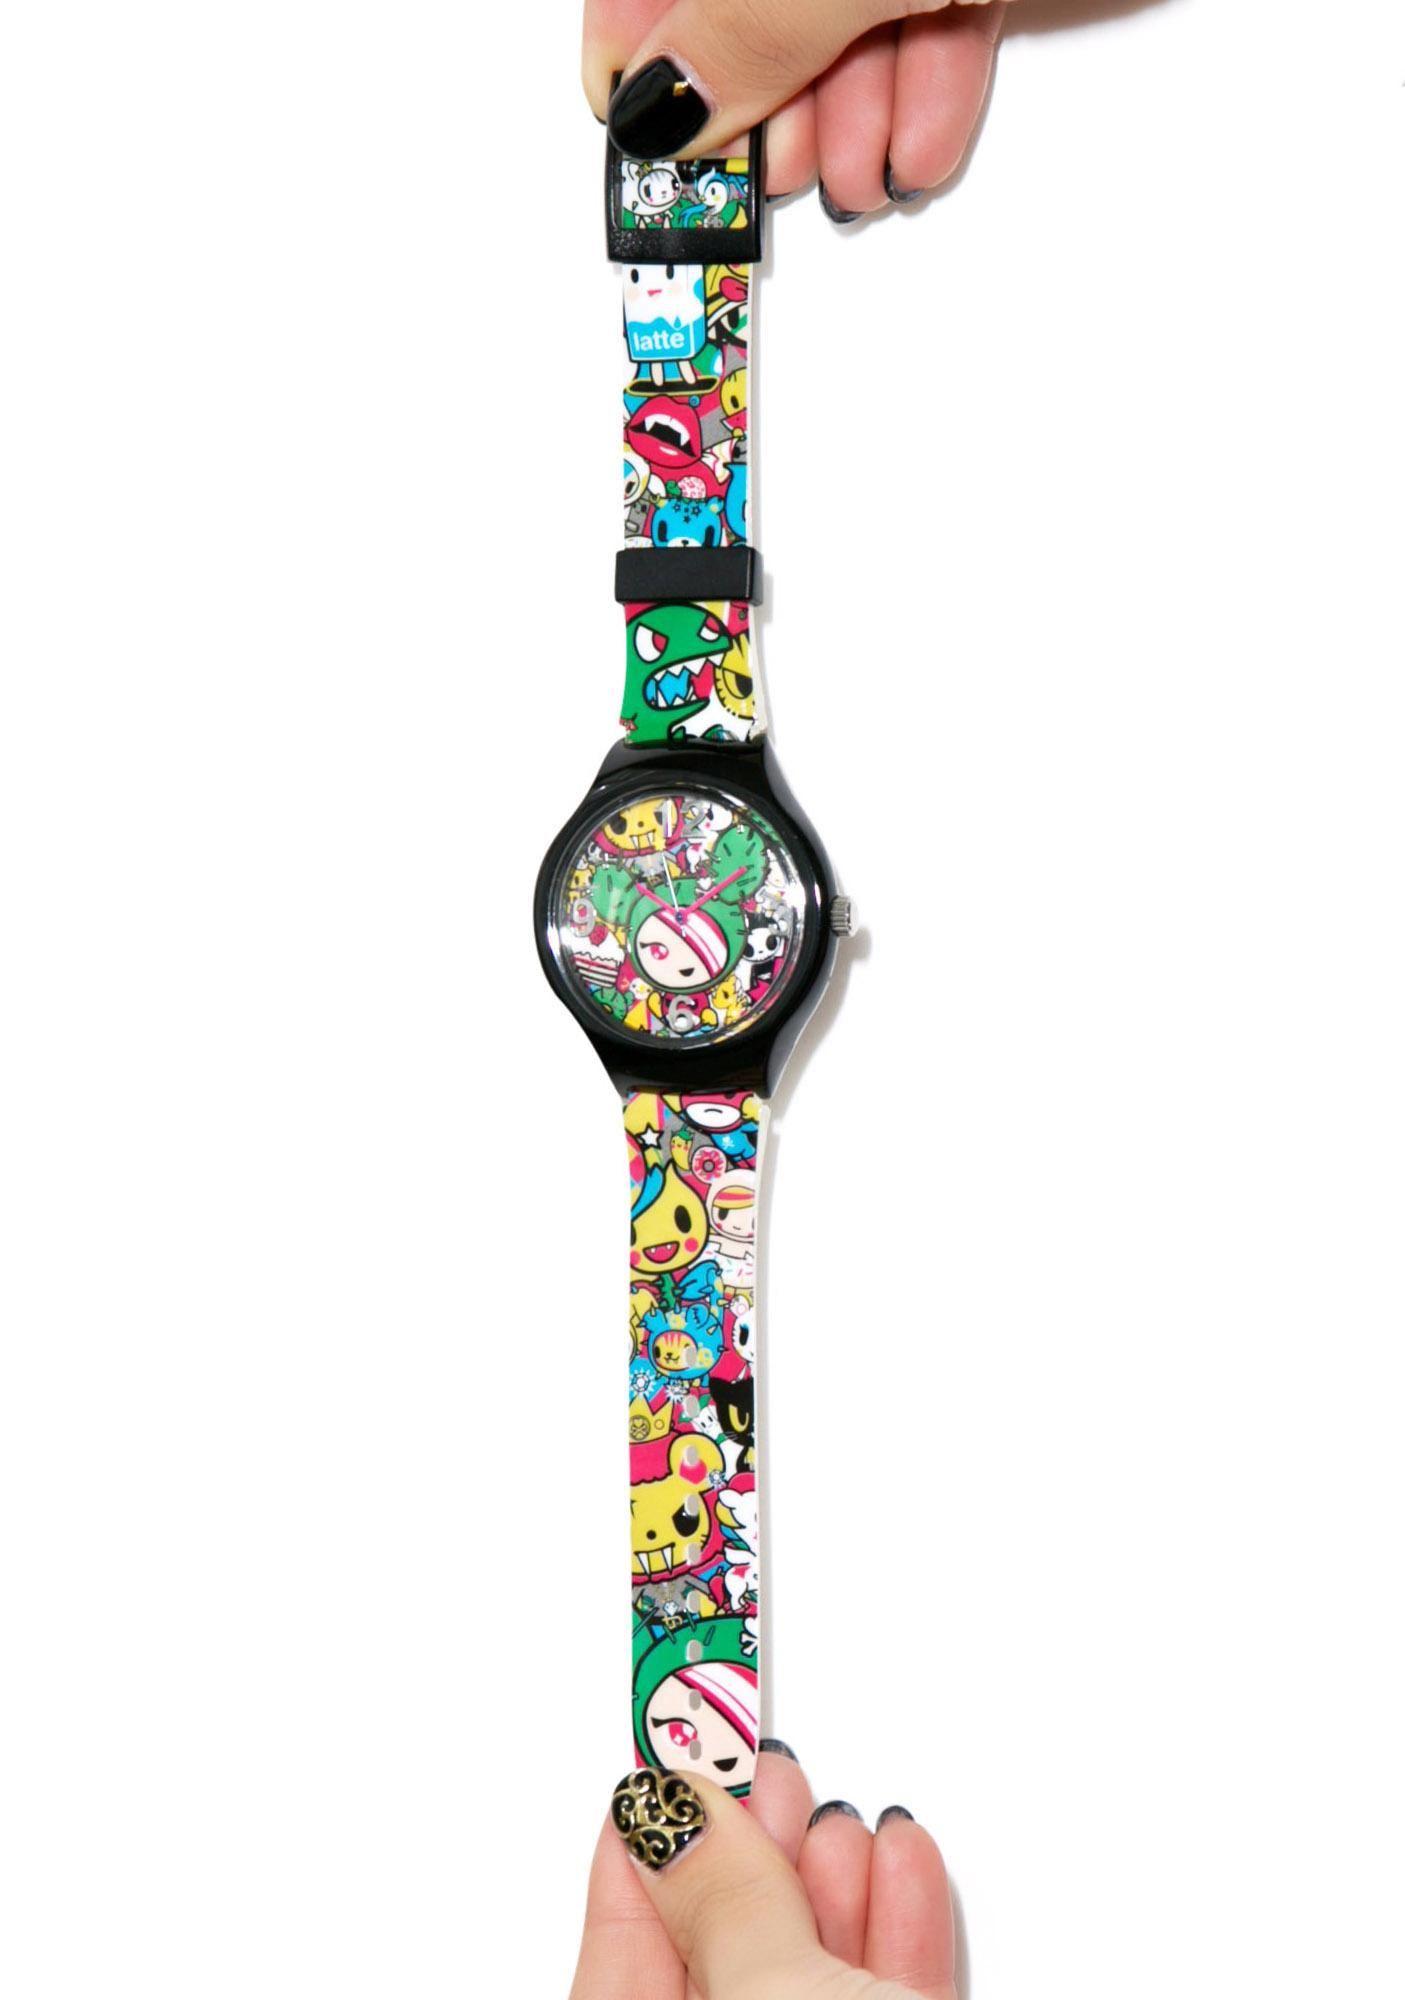 Tokidoki Iconic Watch